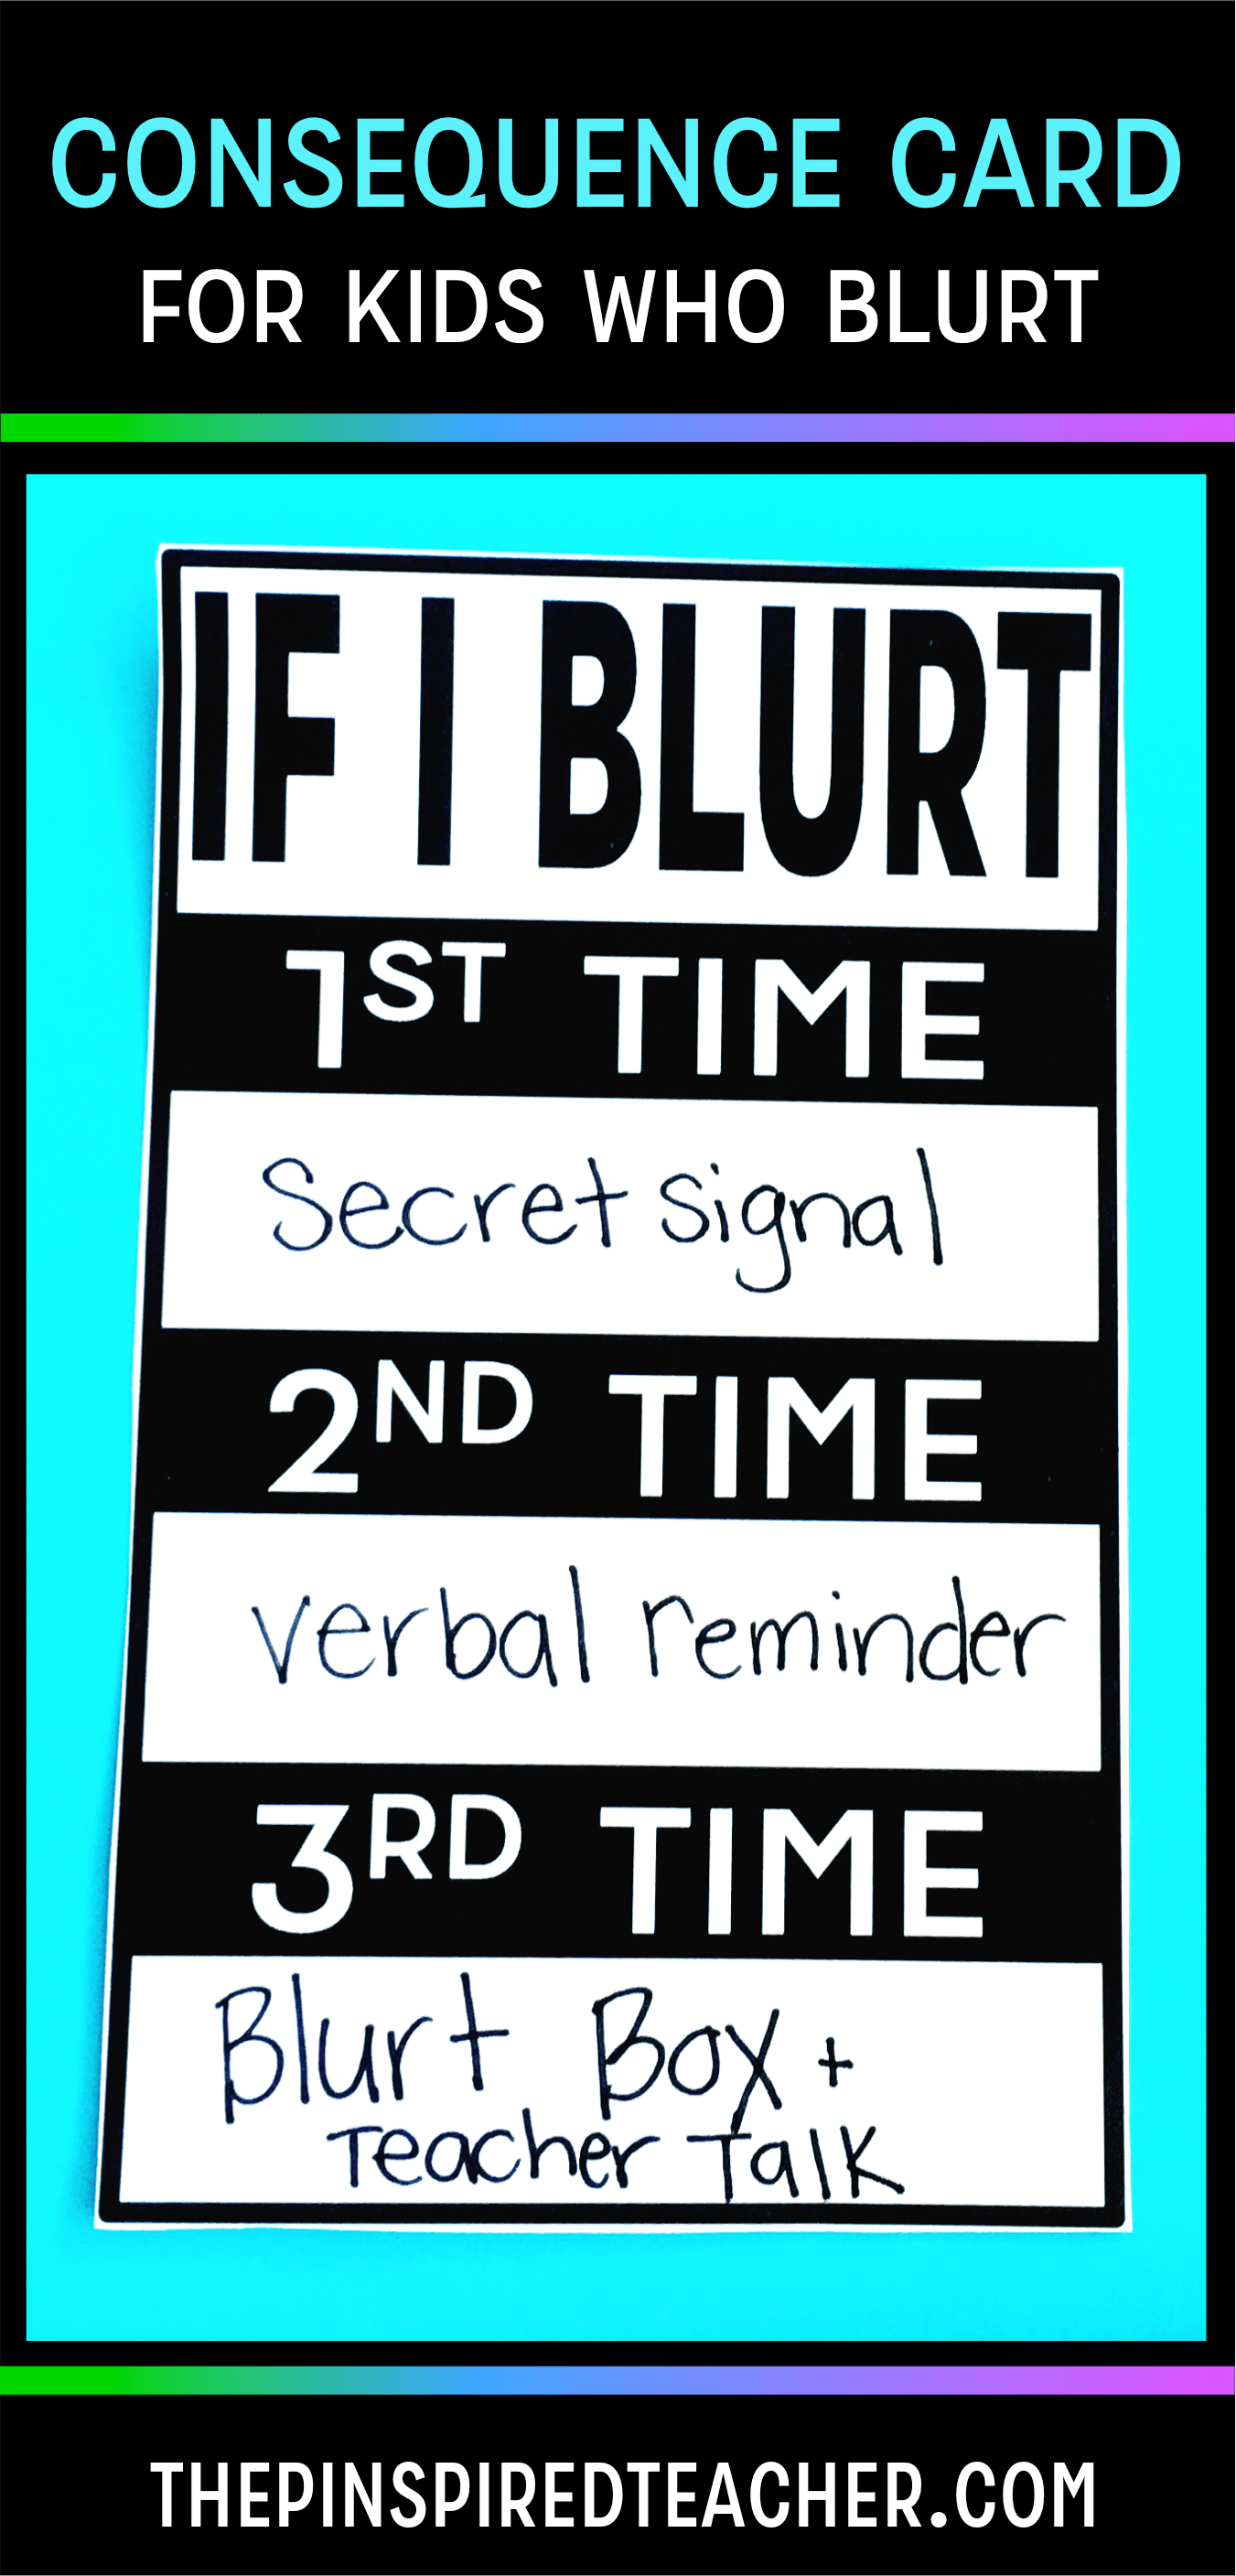 Consequence Card for Kids Who Blurt by The Pinspired Teacher | PBIS | Behavior Consequences for Blurting Out | Blurt Alert | Classroom Management Ideas | Classroom Rules